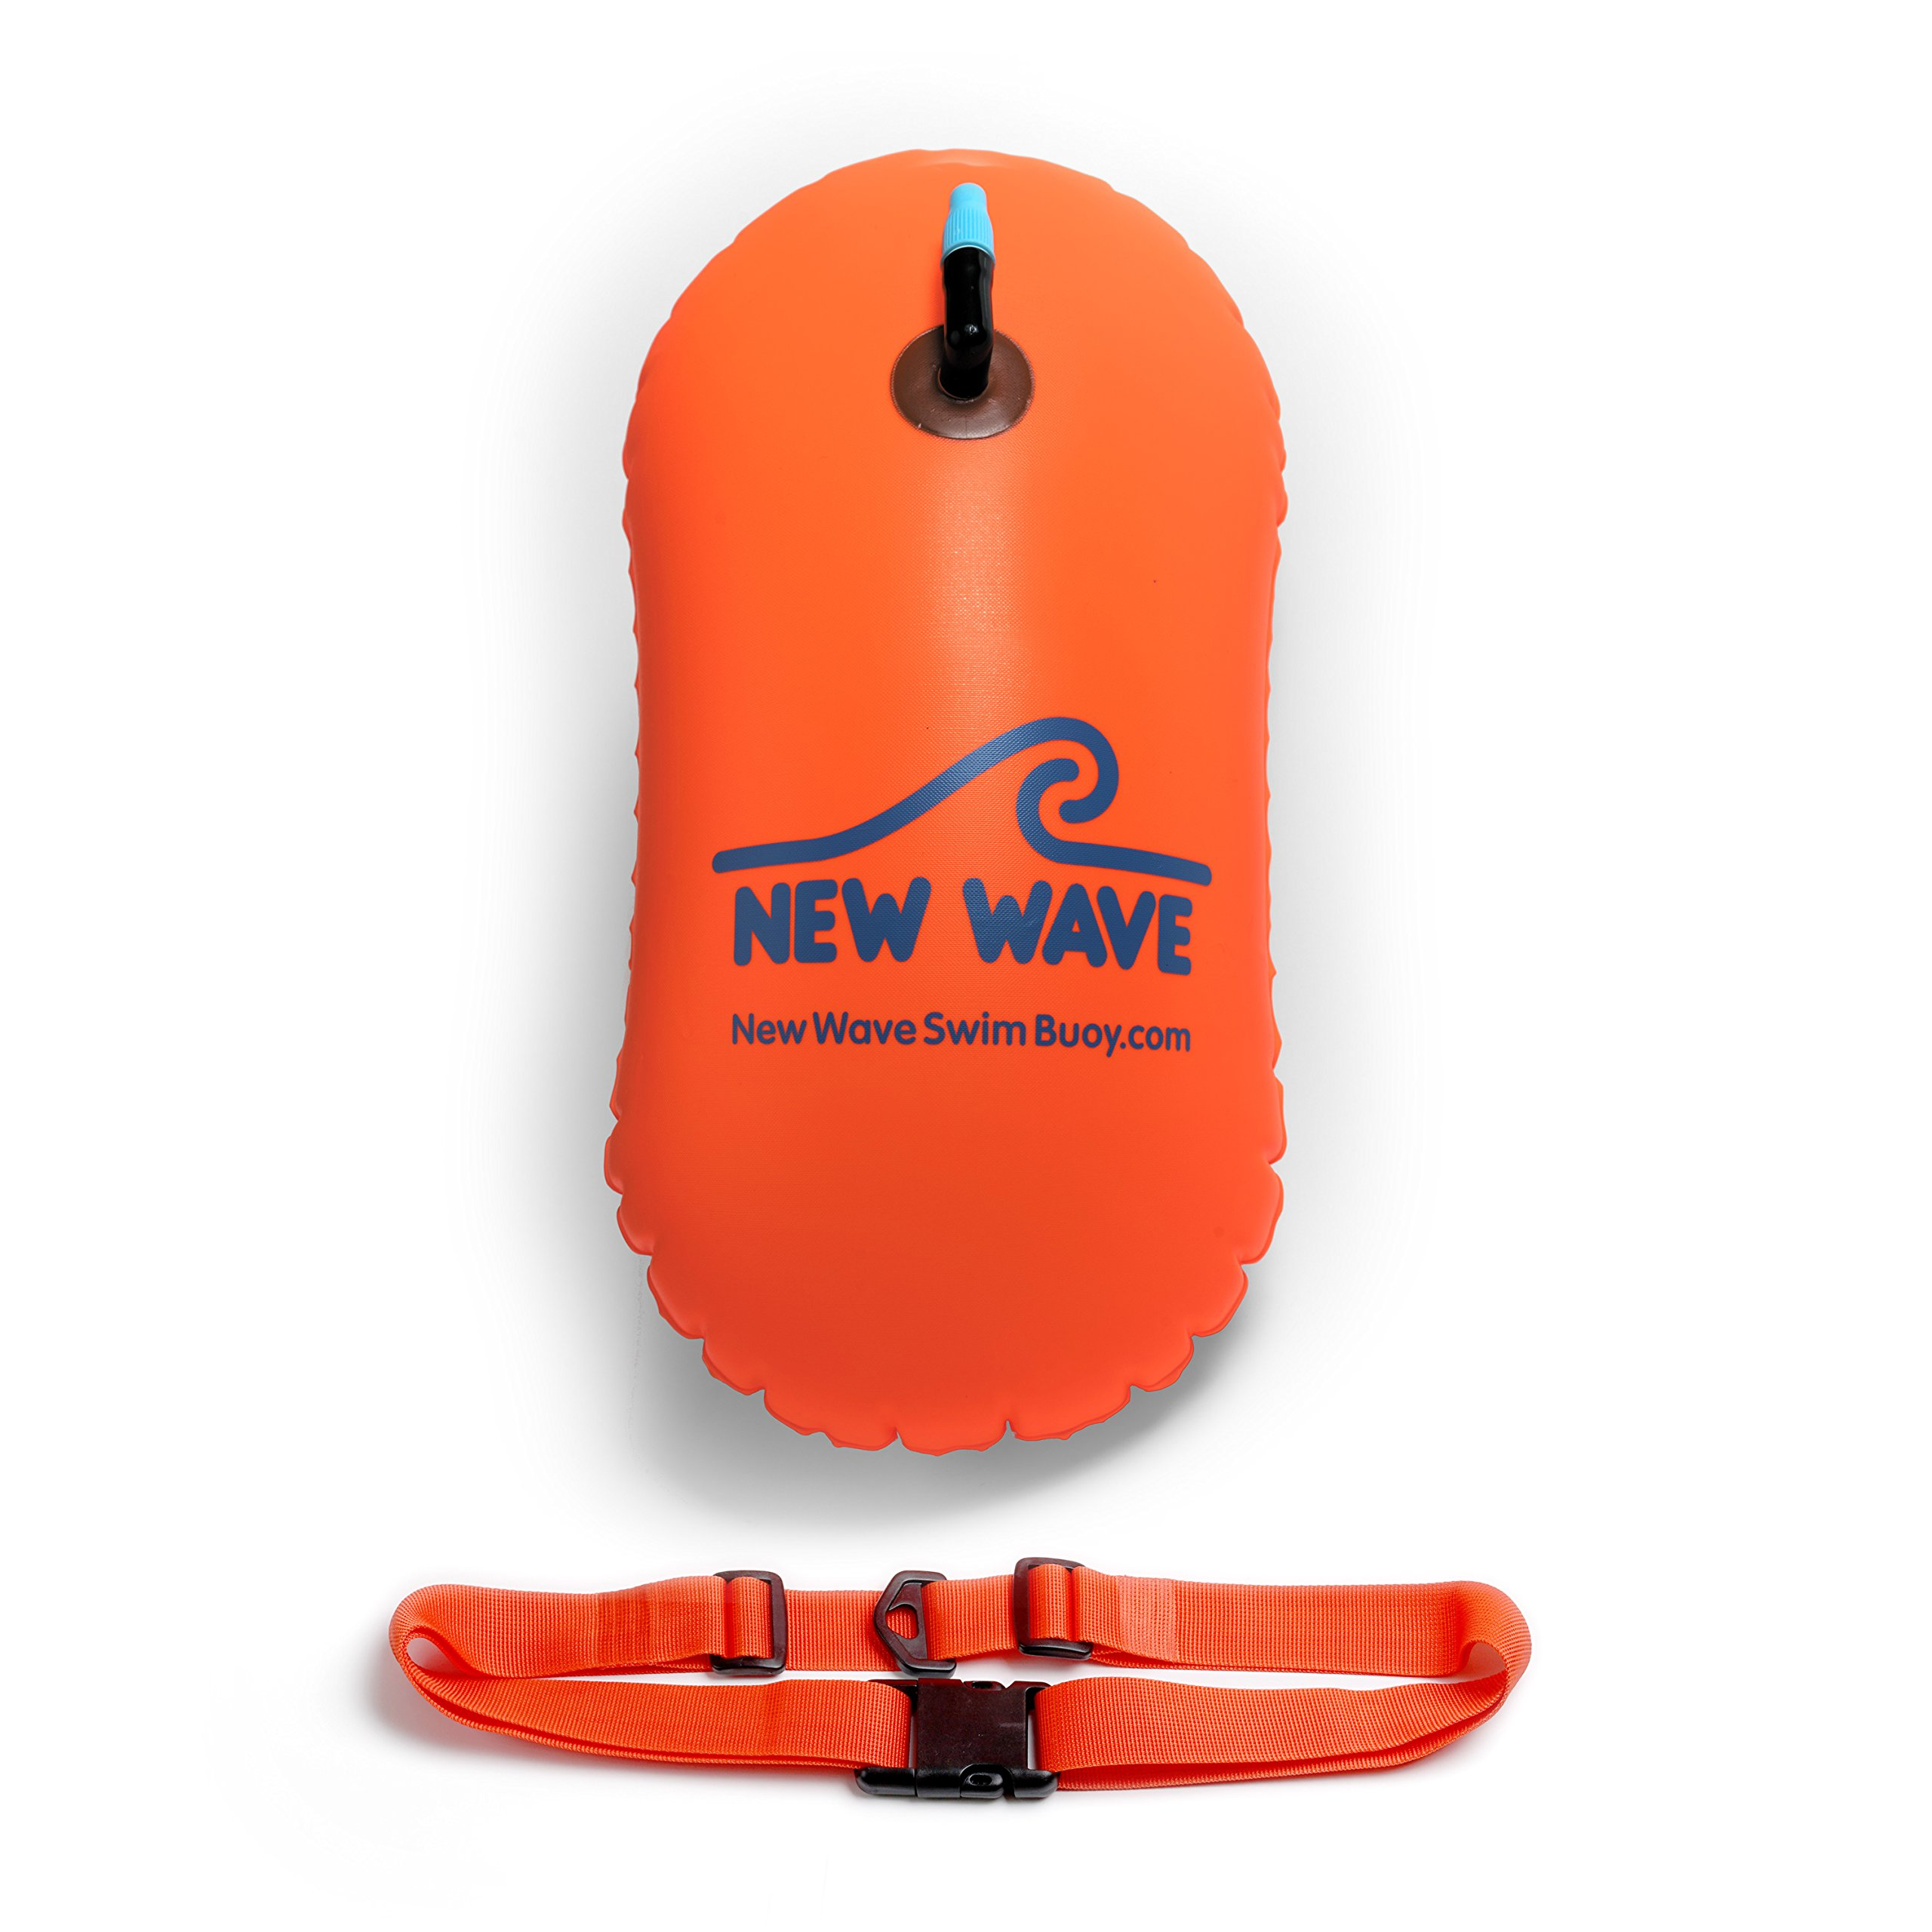 New Wave Swim Bubble for Open Water Swimmers and Triathletes - Swim Safety Buoy Float (Orange) by New Wave Swim Buoy